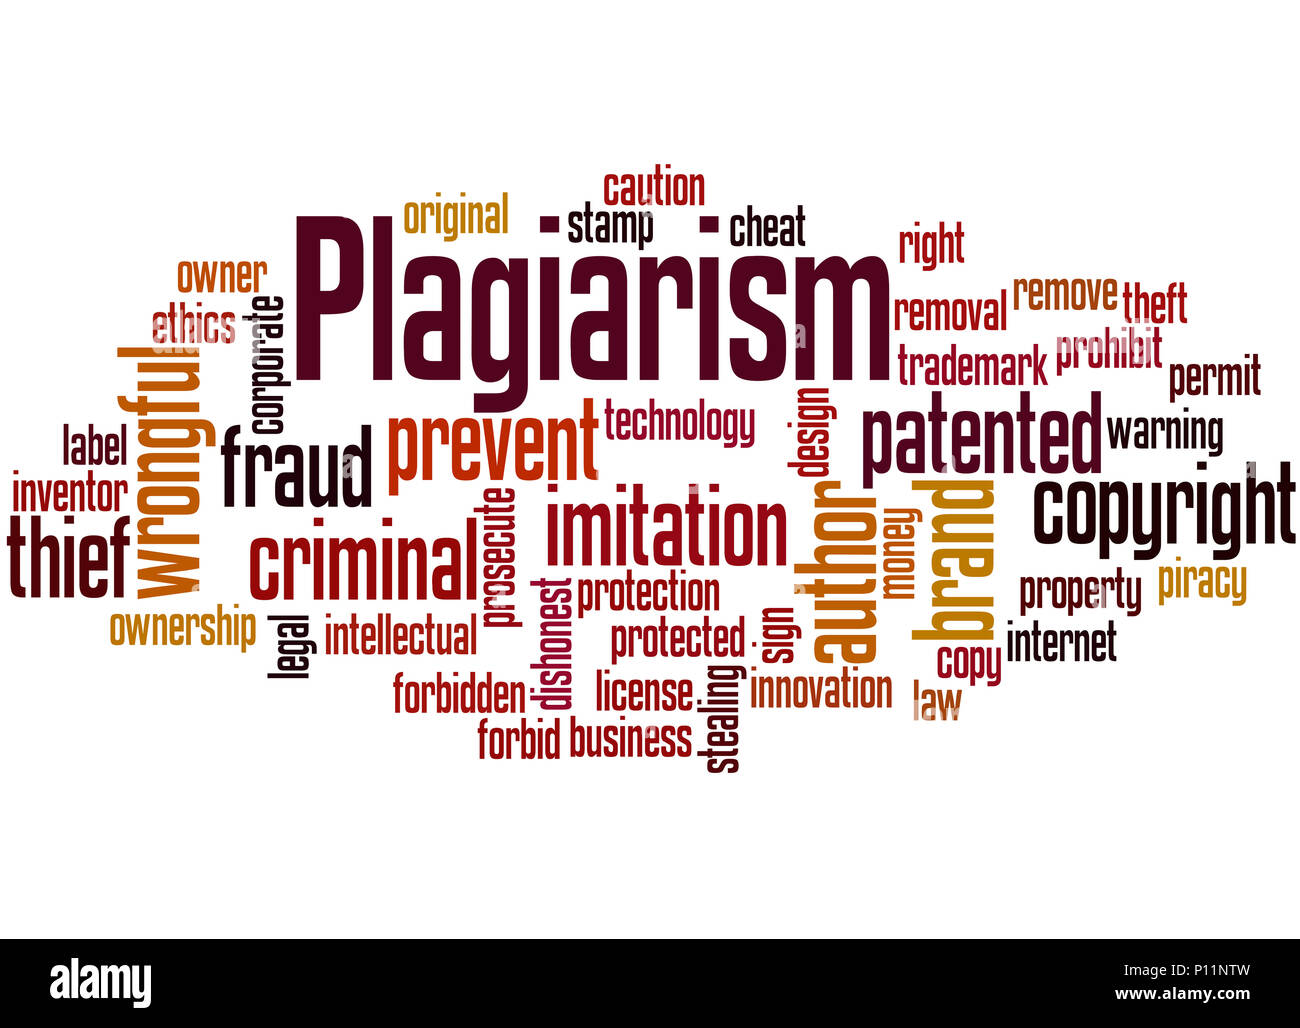 Plagiarism, word cloud concept on white background. - Stock Image